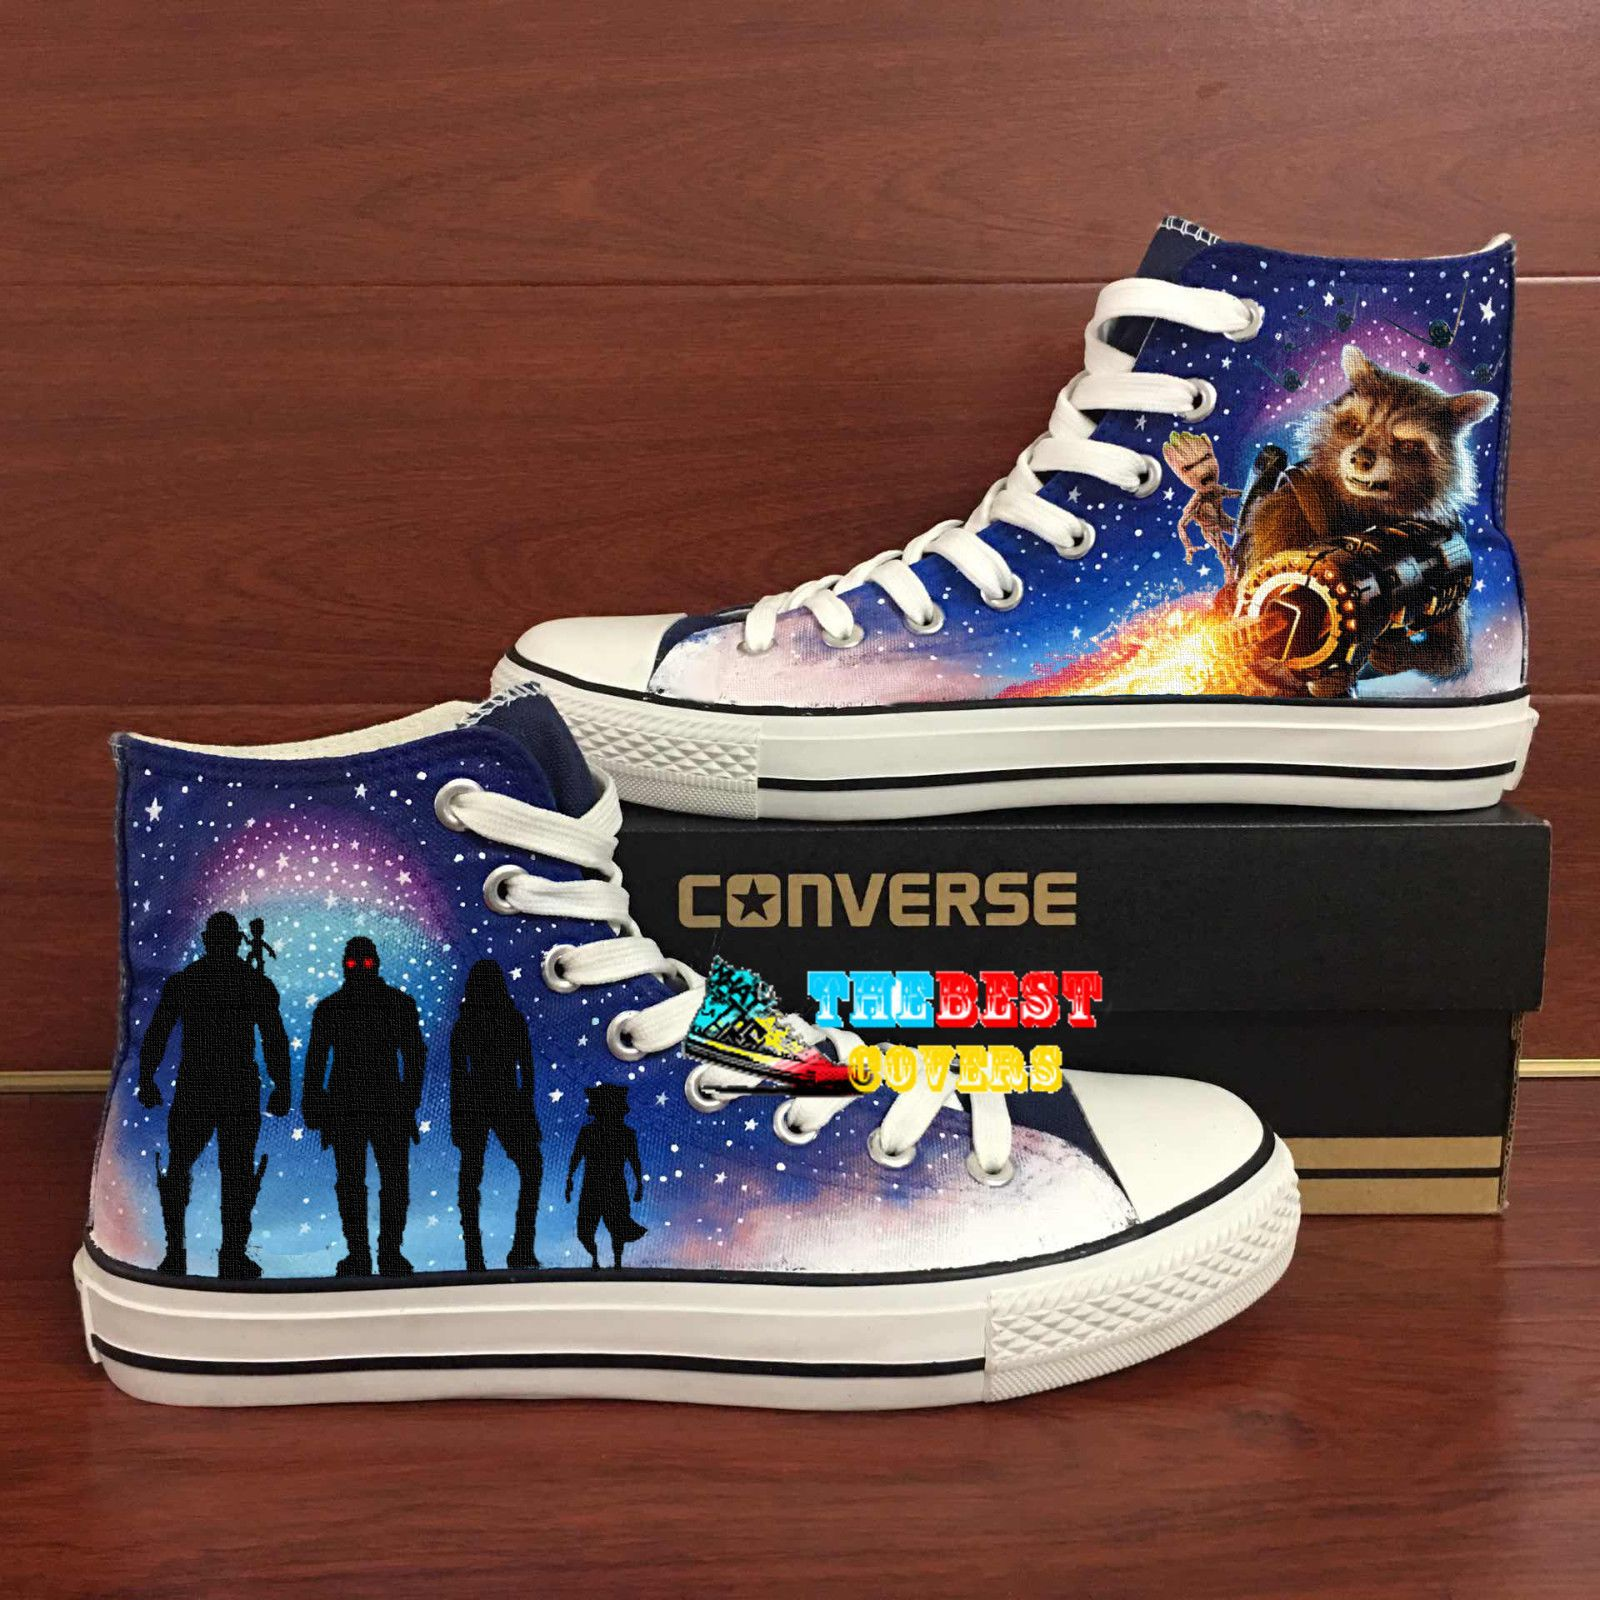 068060c6d2db CONVERSE All Star GUARDIANS OF THE GALAXY marvel movie hand painted shoes